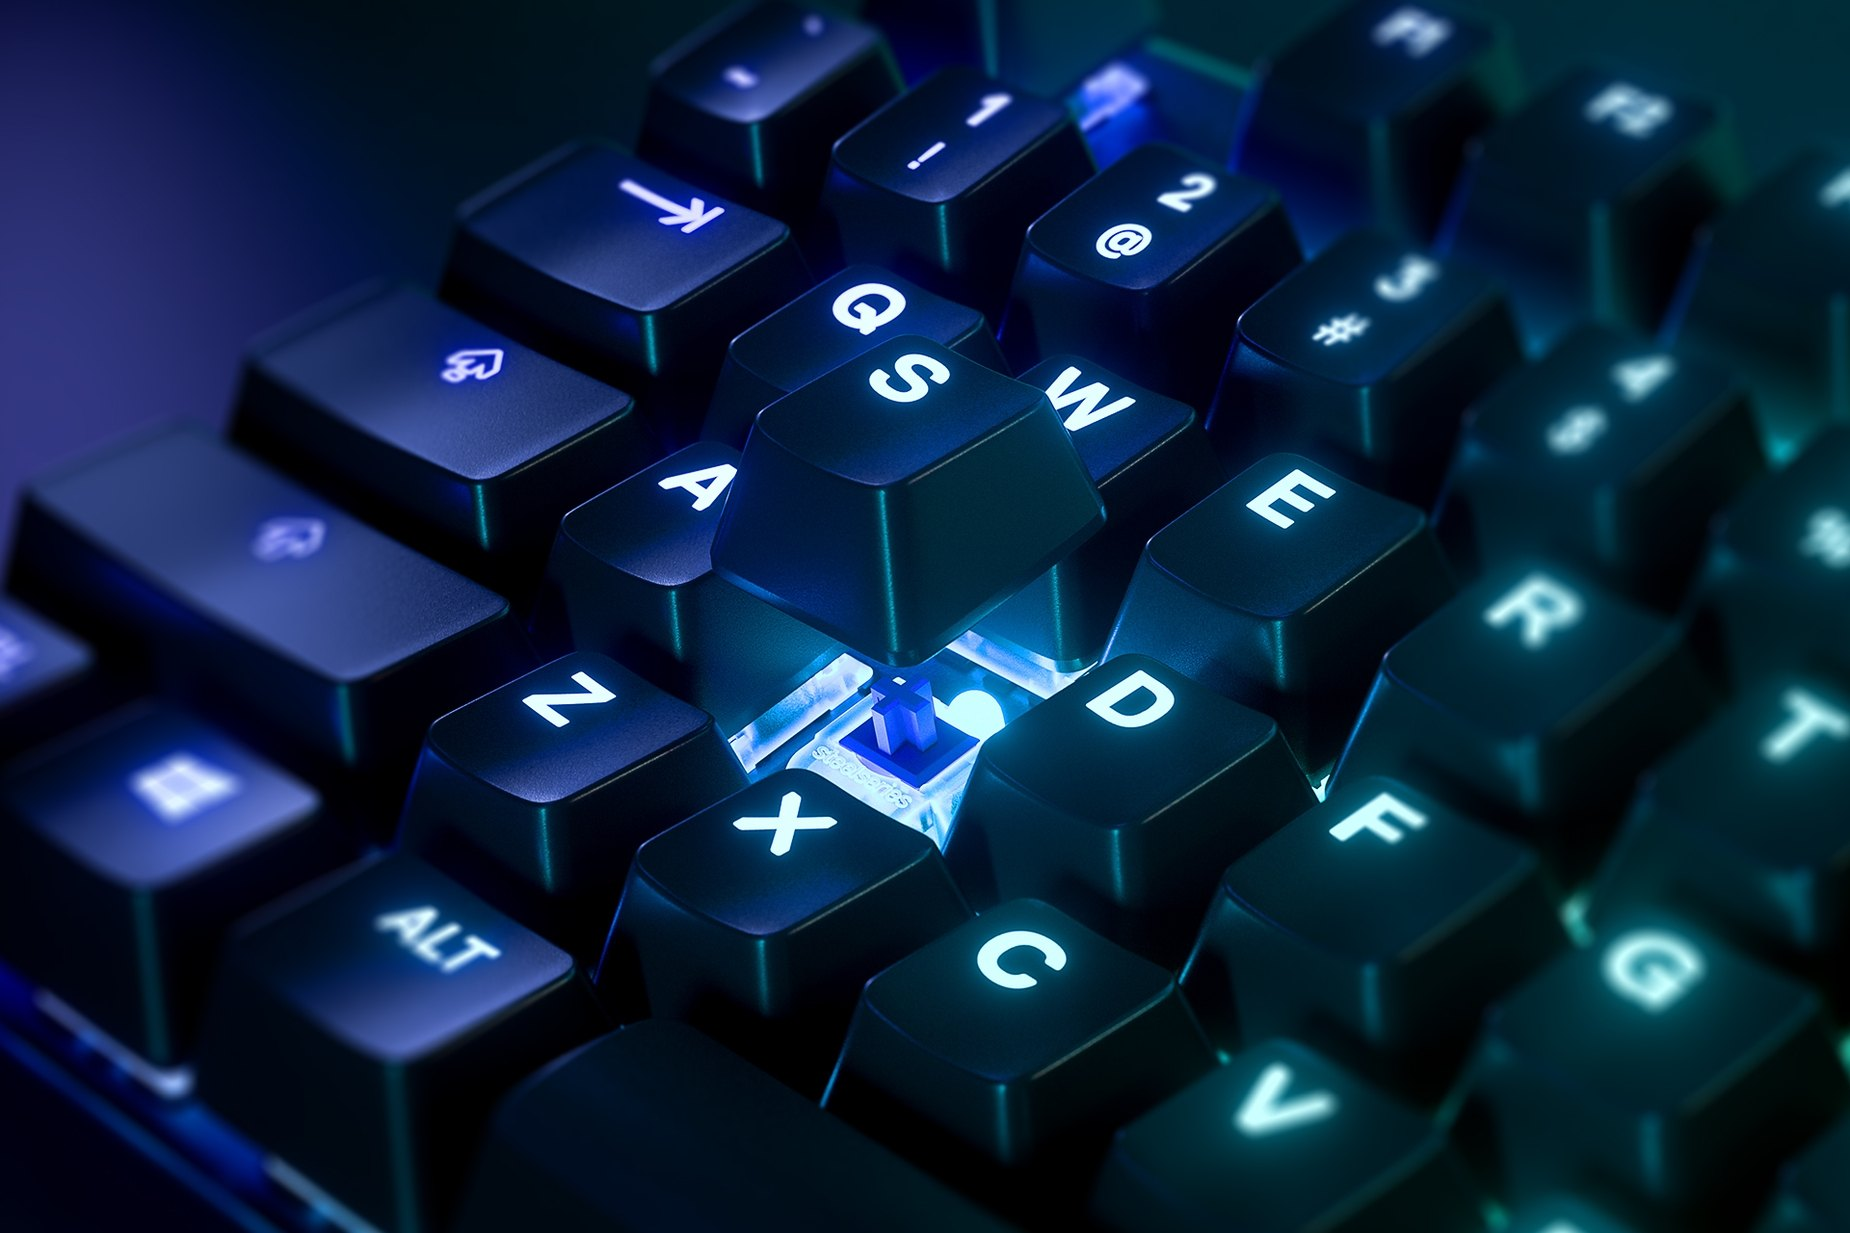 Zoomed in view of a single key on the US English-Apex 7 (Blue Switch) gaming keyboard, the key is raised up to show the SteelSeries QX2 Mechanical RGB Switch underneath